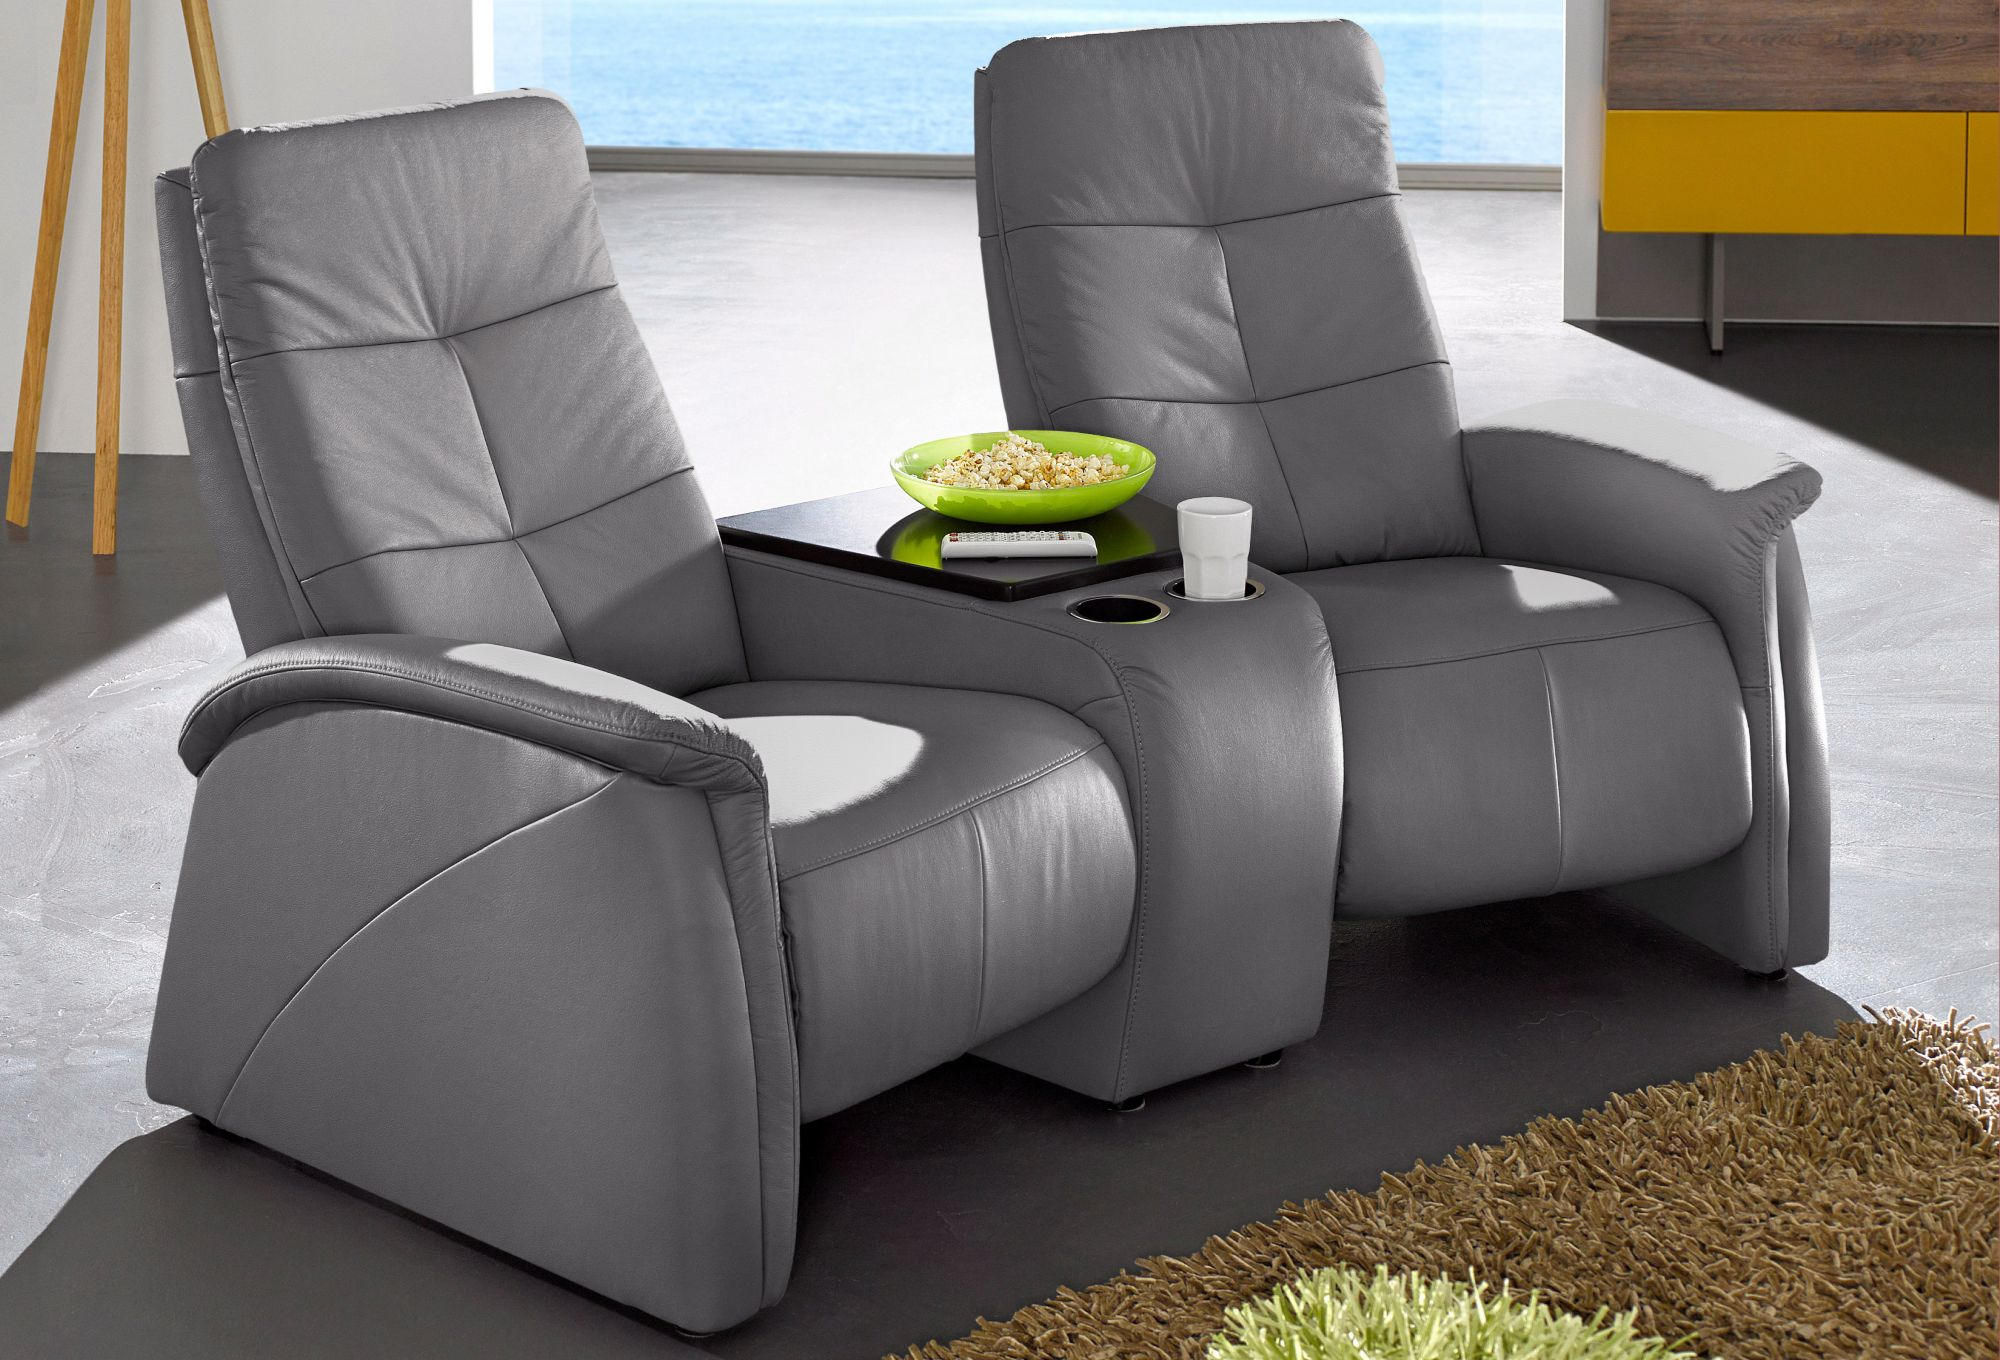 2-Sitzer, City Sofa, mit Relaxfunktion